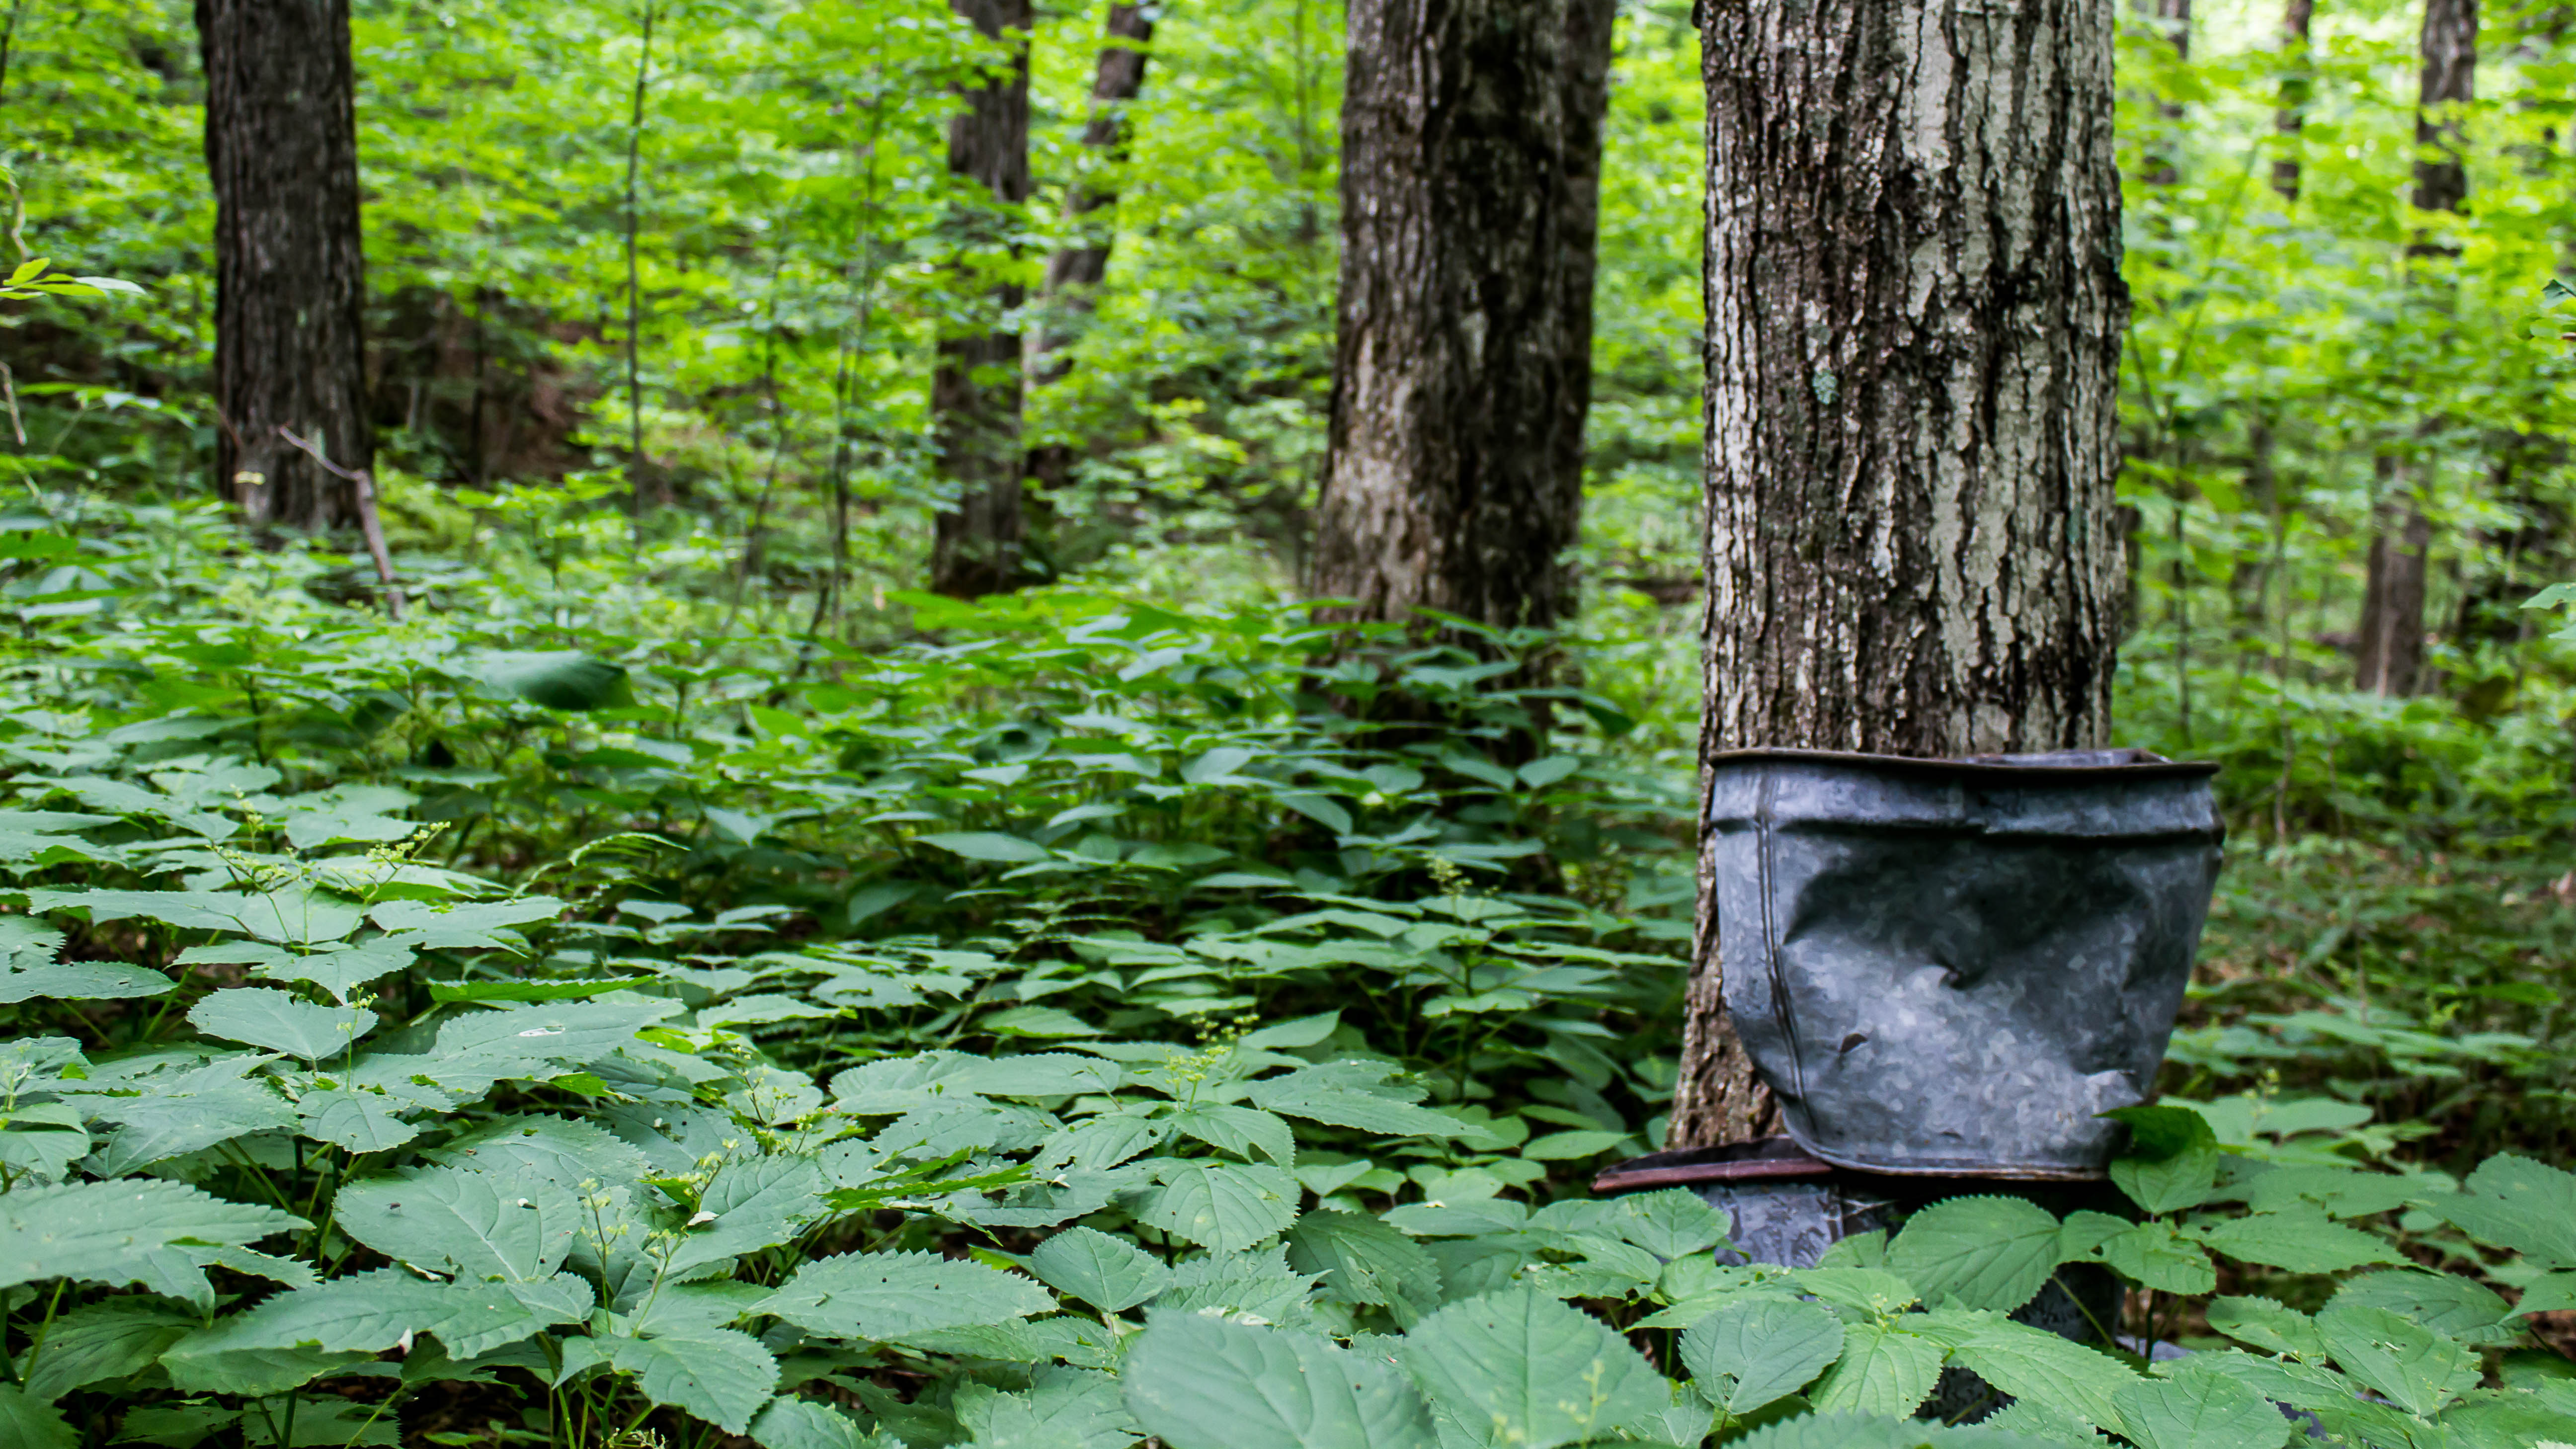 Unspoiled. Generous. Vermont forests give back.